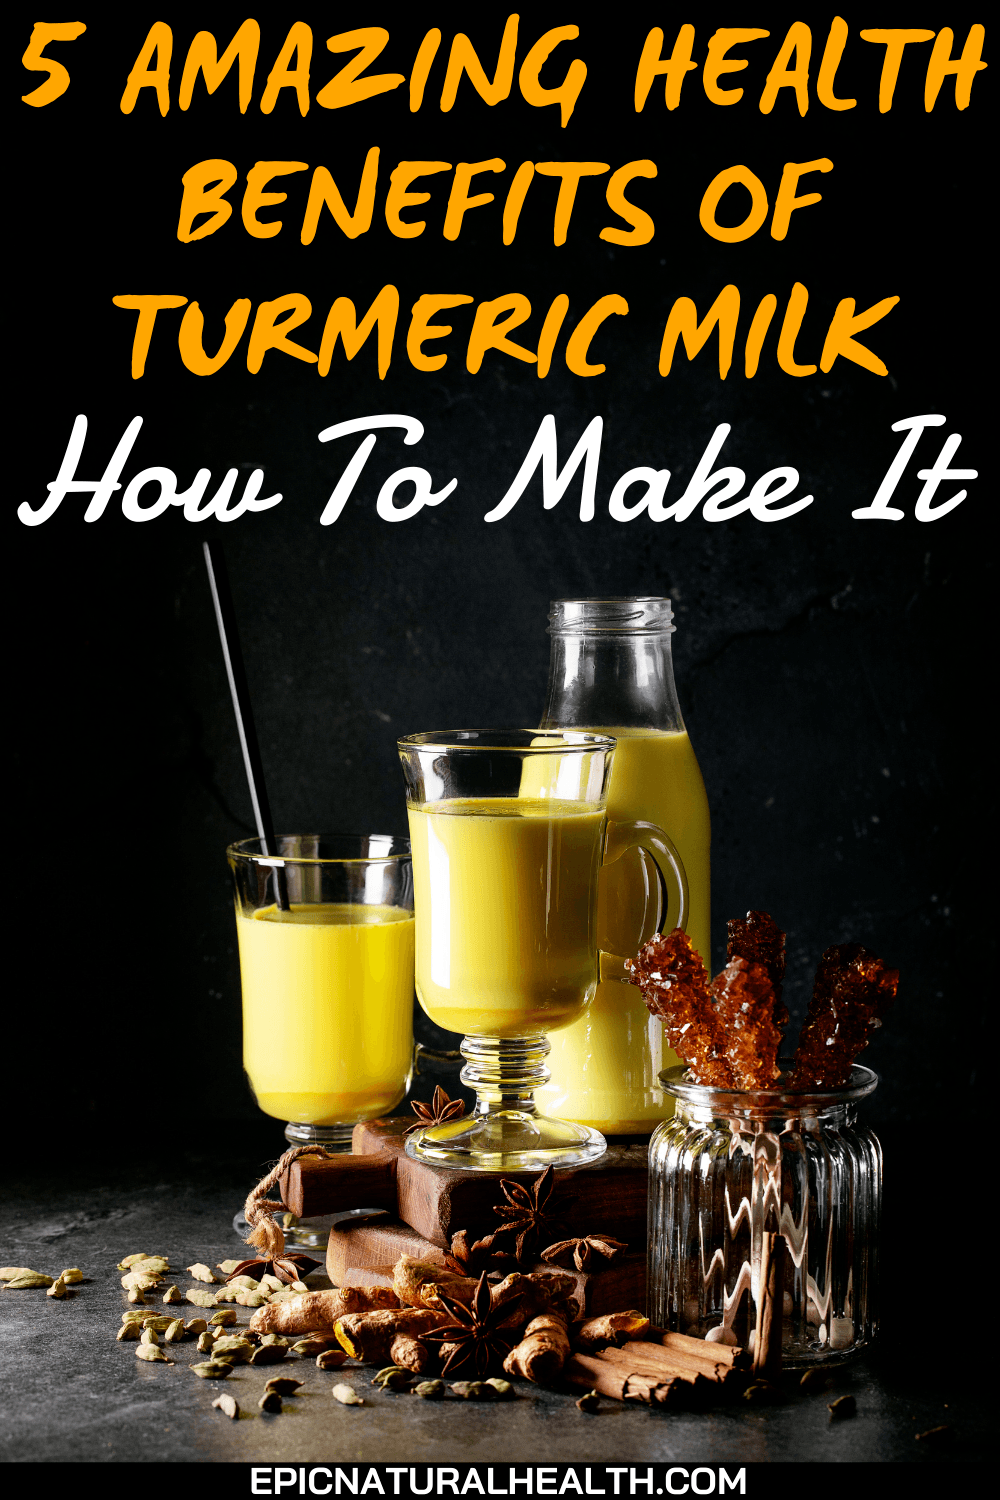 5 amazing health benefits of turmeric milk and how to make it